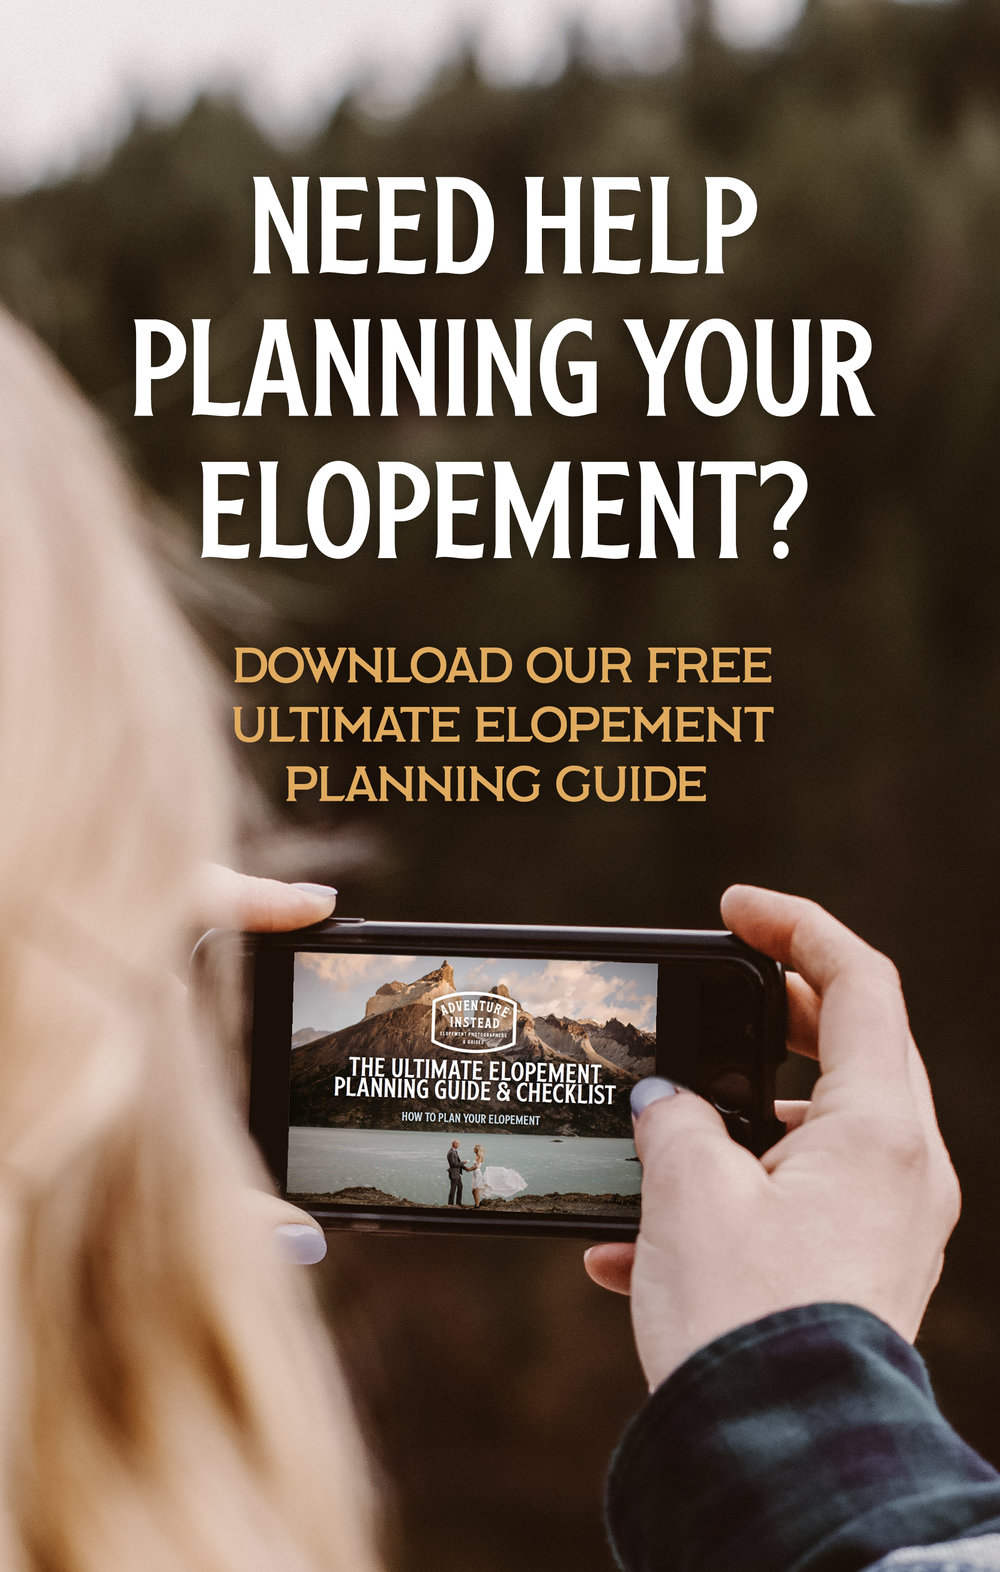 free-elopement-planning-guide-pdf-download